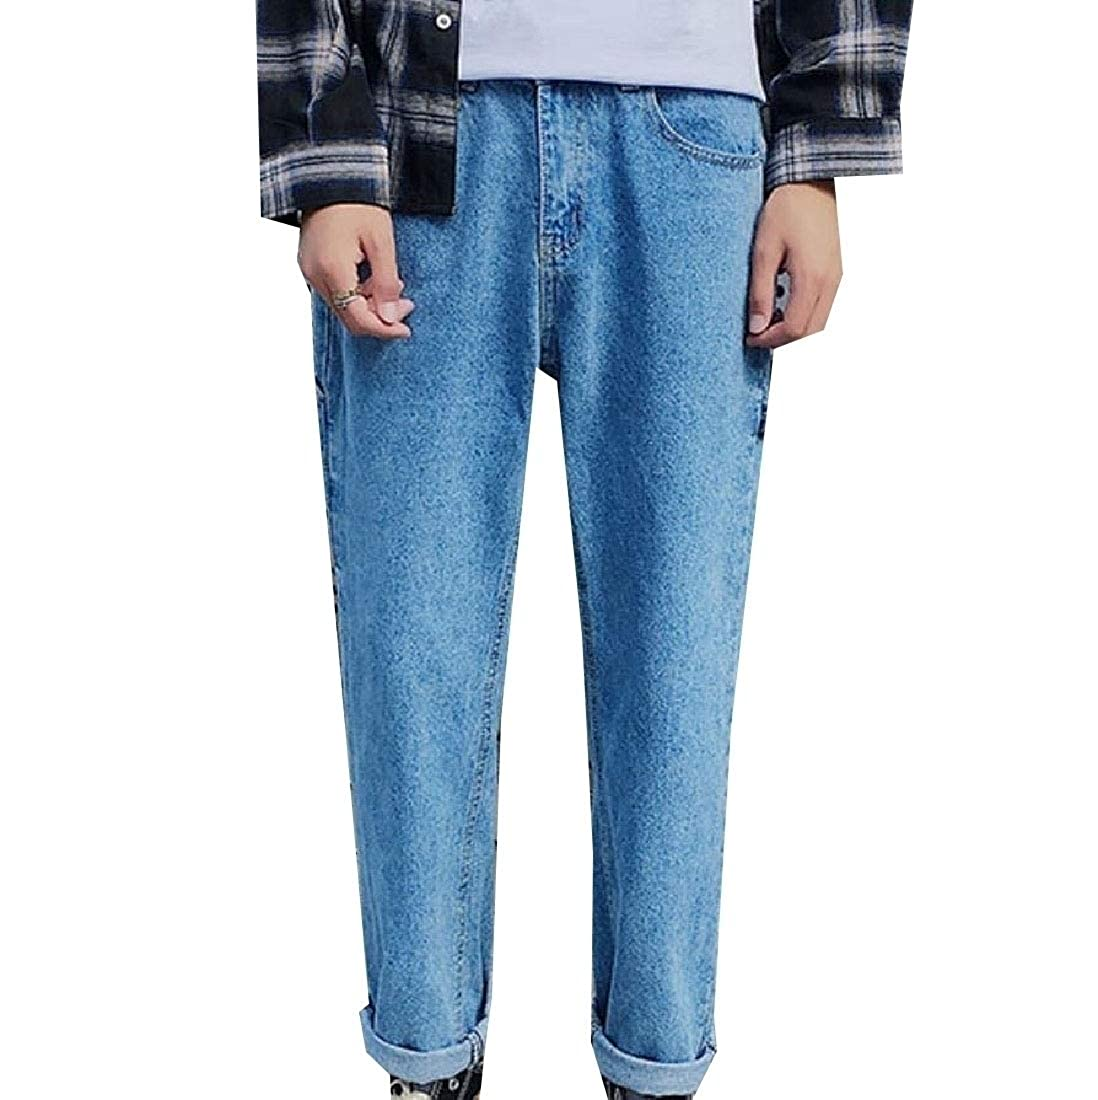 Young2 Mens Casual Wide Leg Straight Harem Relaxed-Fit Jeans Pants